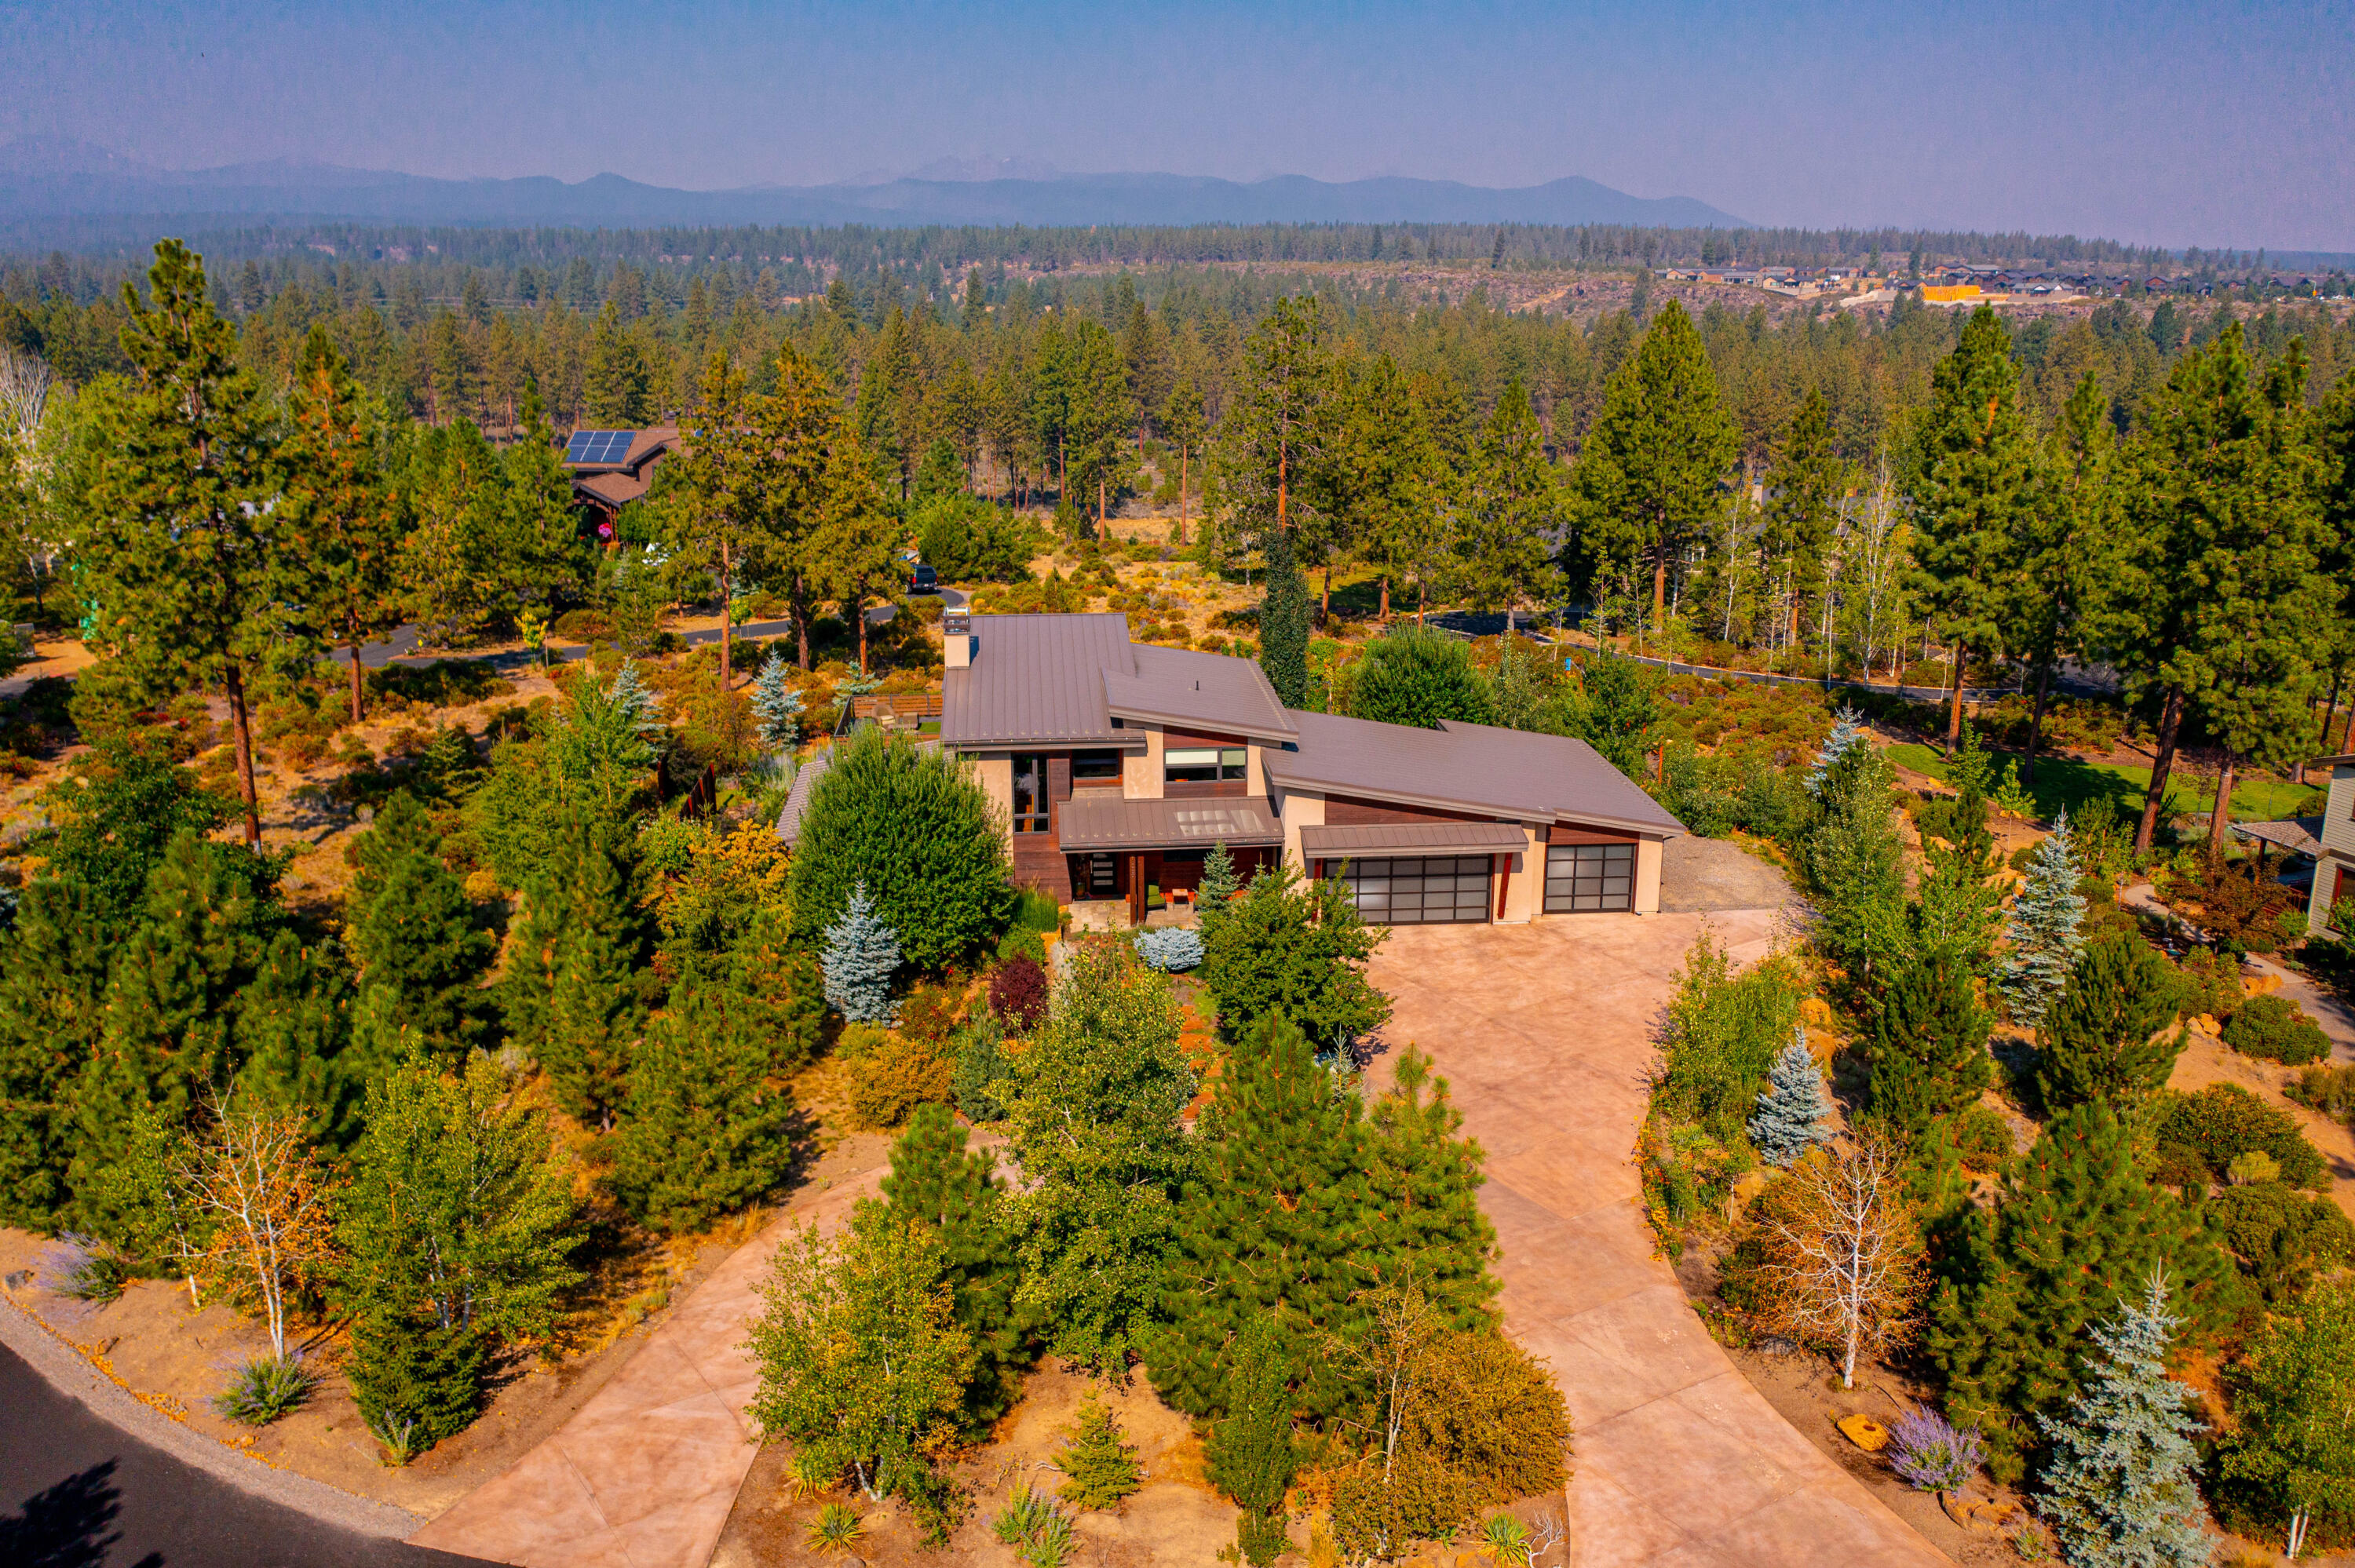 Architect designed by it's owner, this contemporary dream home gazes at the Cascade mountains on a private 1.42 acre lot overlooking professionally designed gardens and glass greenhouse. The home opens to hiking trails along the Deschutes River, mountain biking access to the Bend Trail system, paved bike path into Bend, and only 18 minutes to Mt. Bachelor and the Cascade Lakes.  Design features include 3 indoor fireplaces, 2 outdoor, Cement Elegance counters, expansive mud room with custom lockers and oversized 3 car glass door garage with shop area including 3 - 220V capability.  Designer kitchen features the largest island with built-in drawer fridges, Sapele wood and glass cabinets, 6 burner professional grade range - a chef's dream! Custom 8' Teak interior doors throughout home. Downstairs primary suite with heated bathroom floors in bathroom, and office makes for easy living while the upstairs features a great room, large upstairs deck with Cascade views, 2 bedrooms & a bathroom.